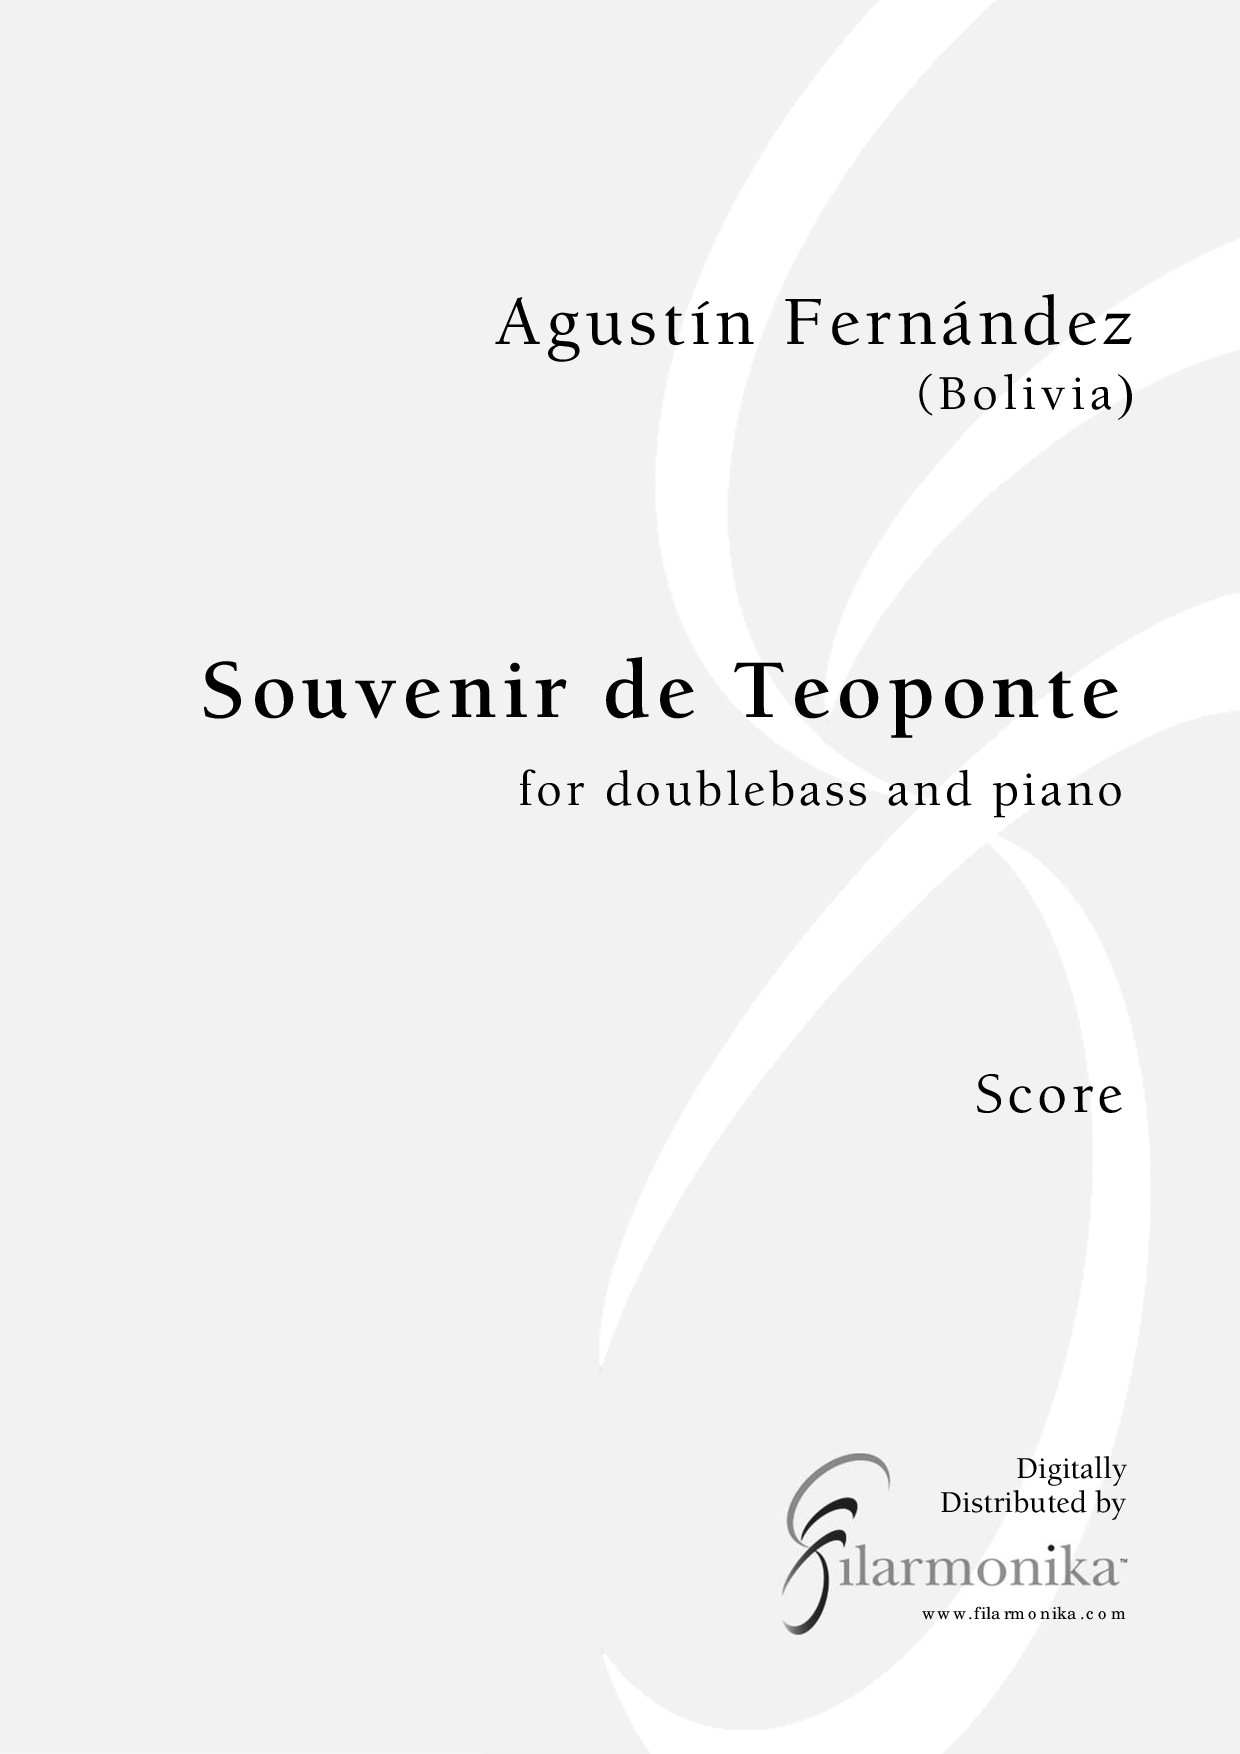 Souvenir de Teoponte, for double bass and piano